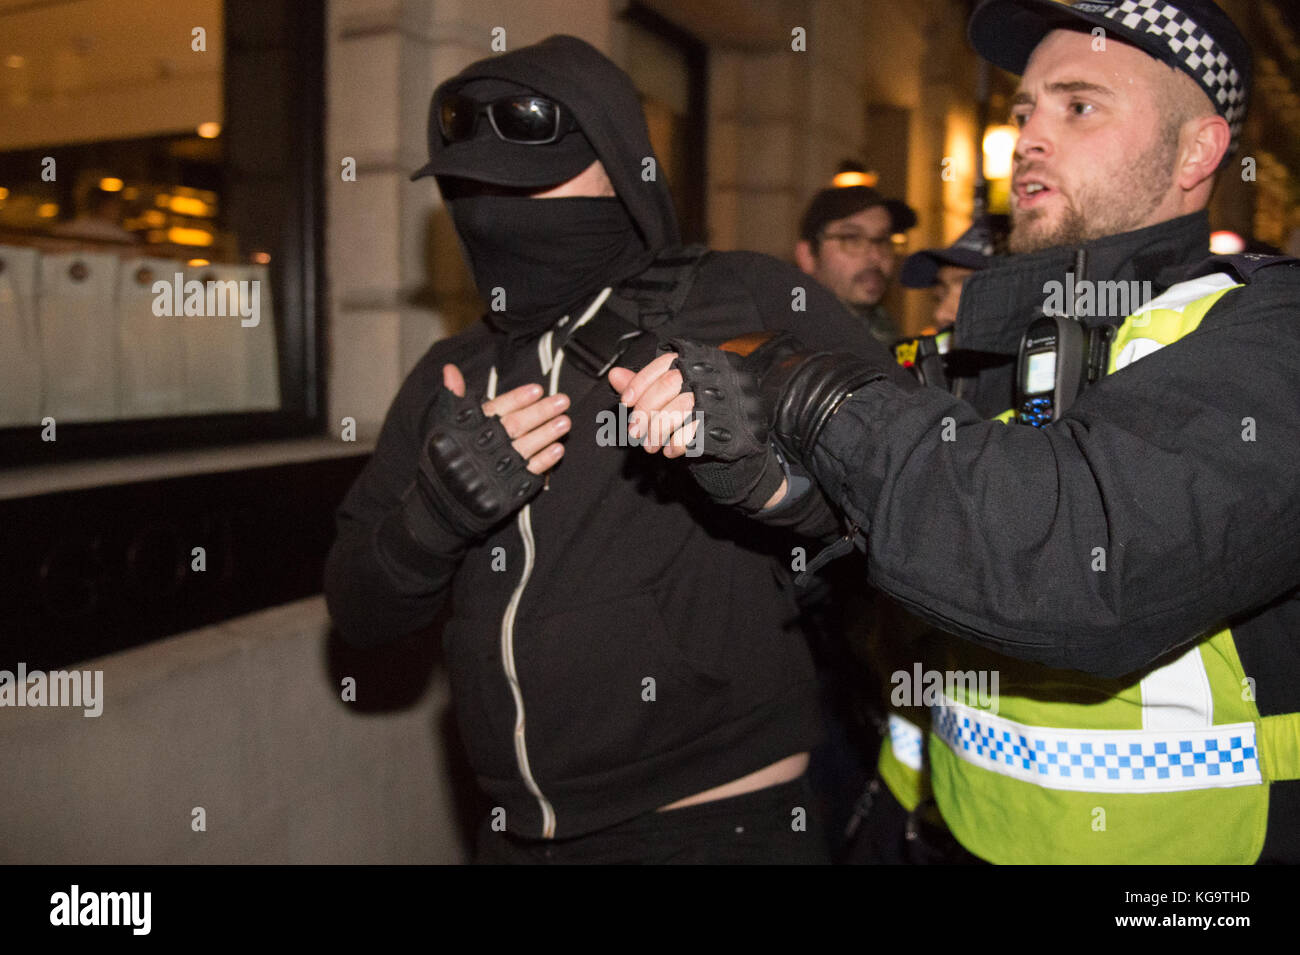 London, United Kingdom. 05th Nov, 2017. Million Mask March 2017 takes place in central London. A protester is arrested. - Stock Image